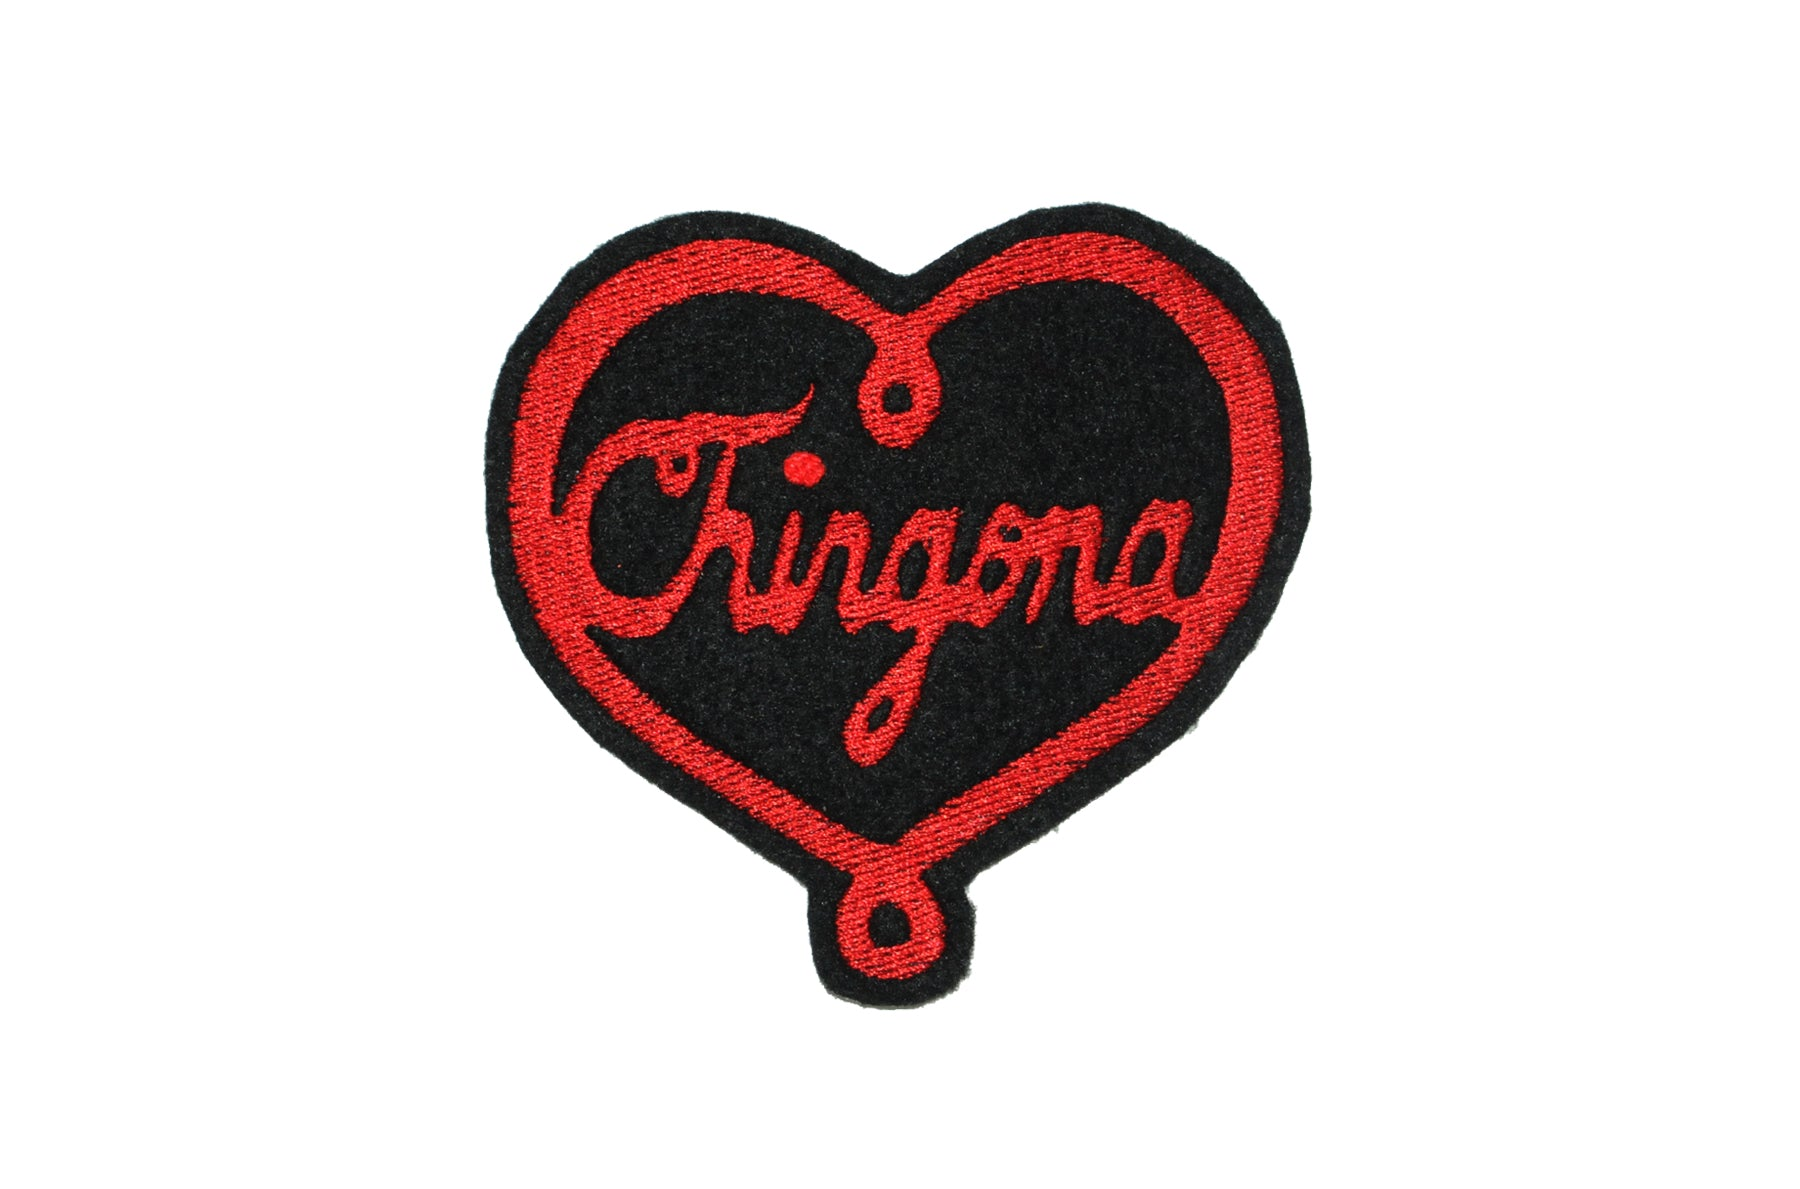 Chingona De Mi Corazon Patch